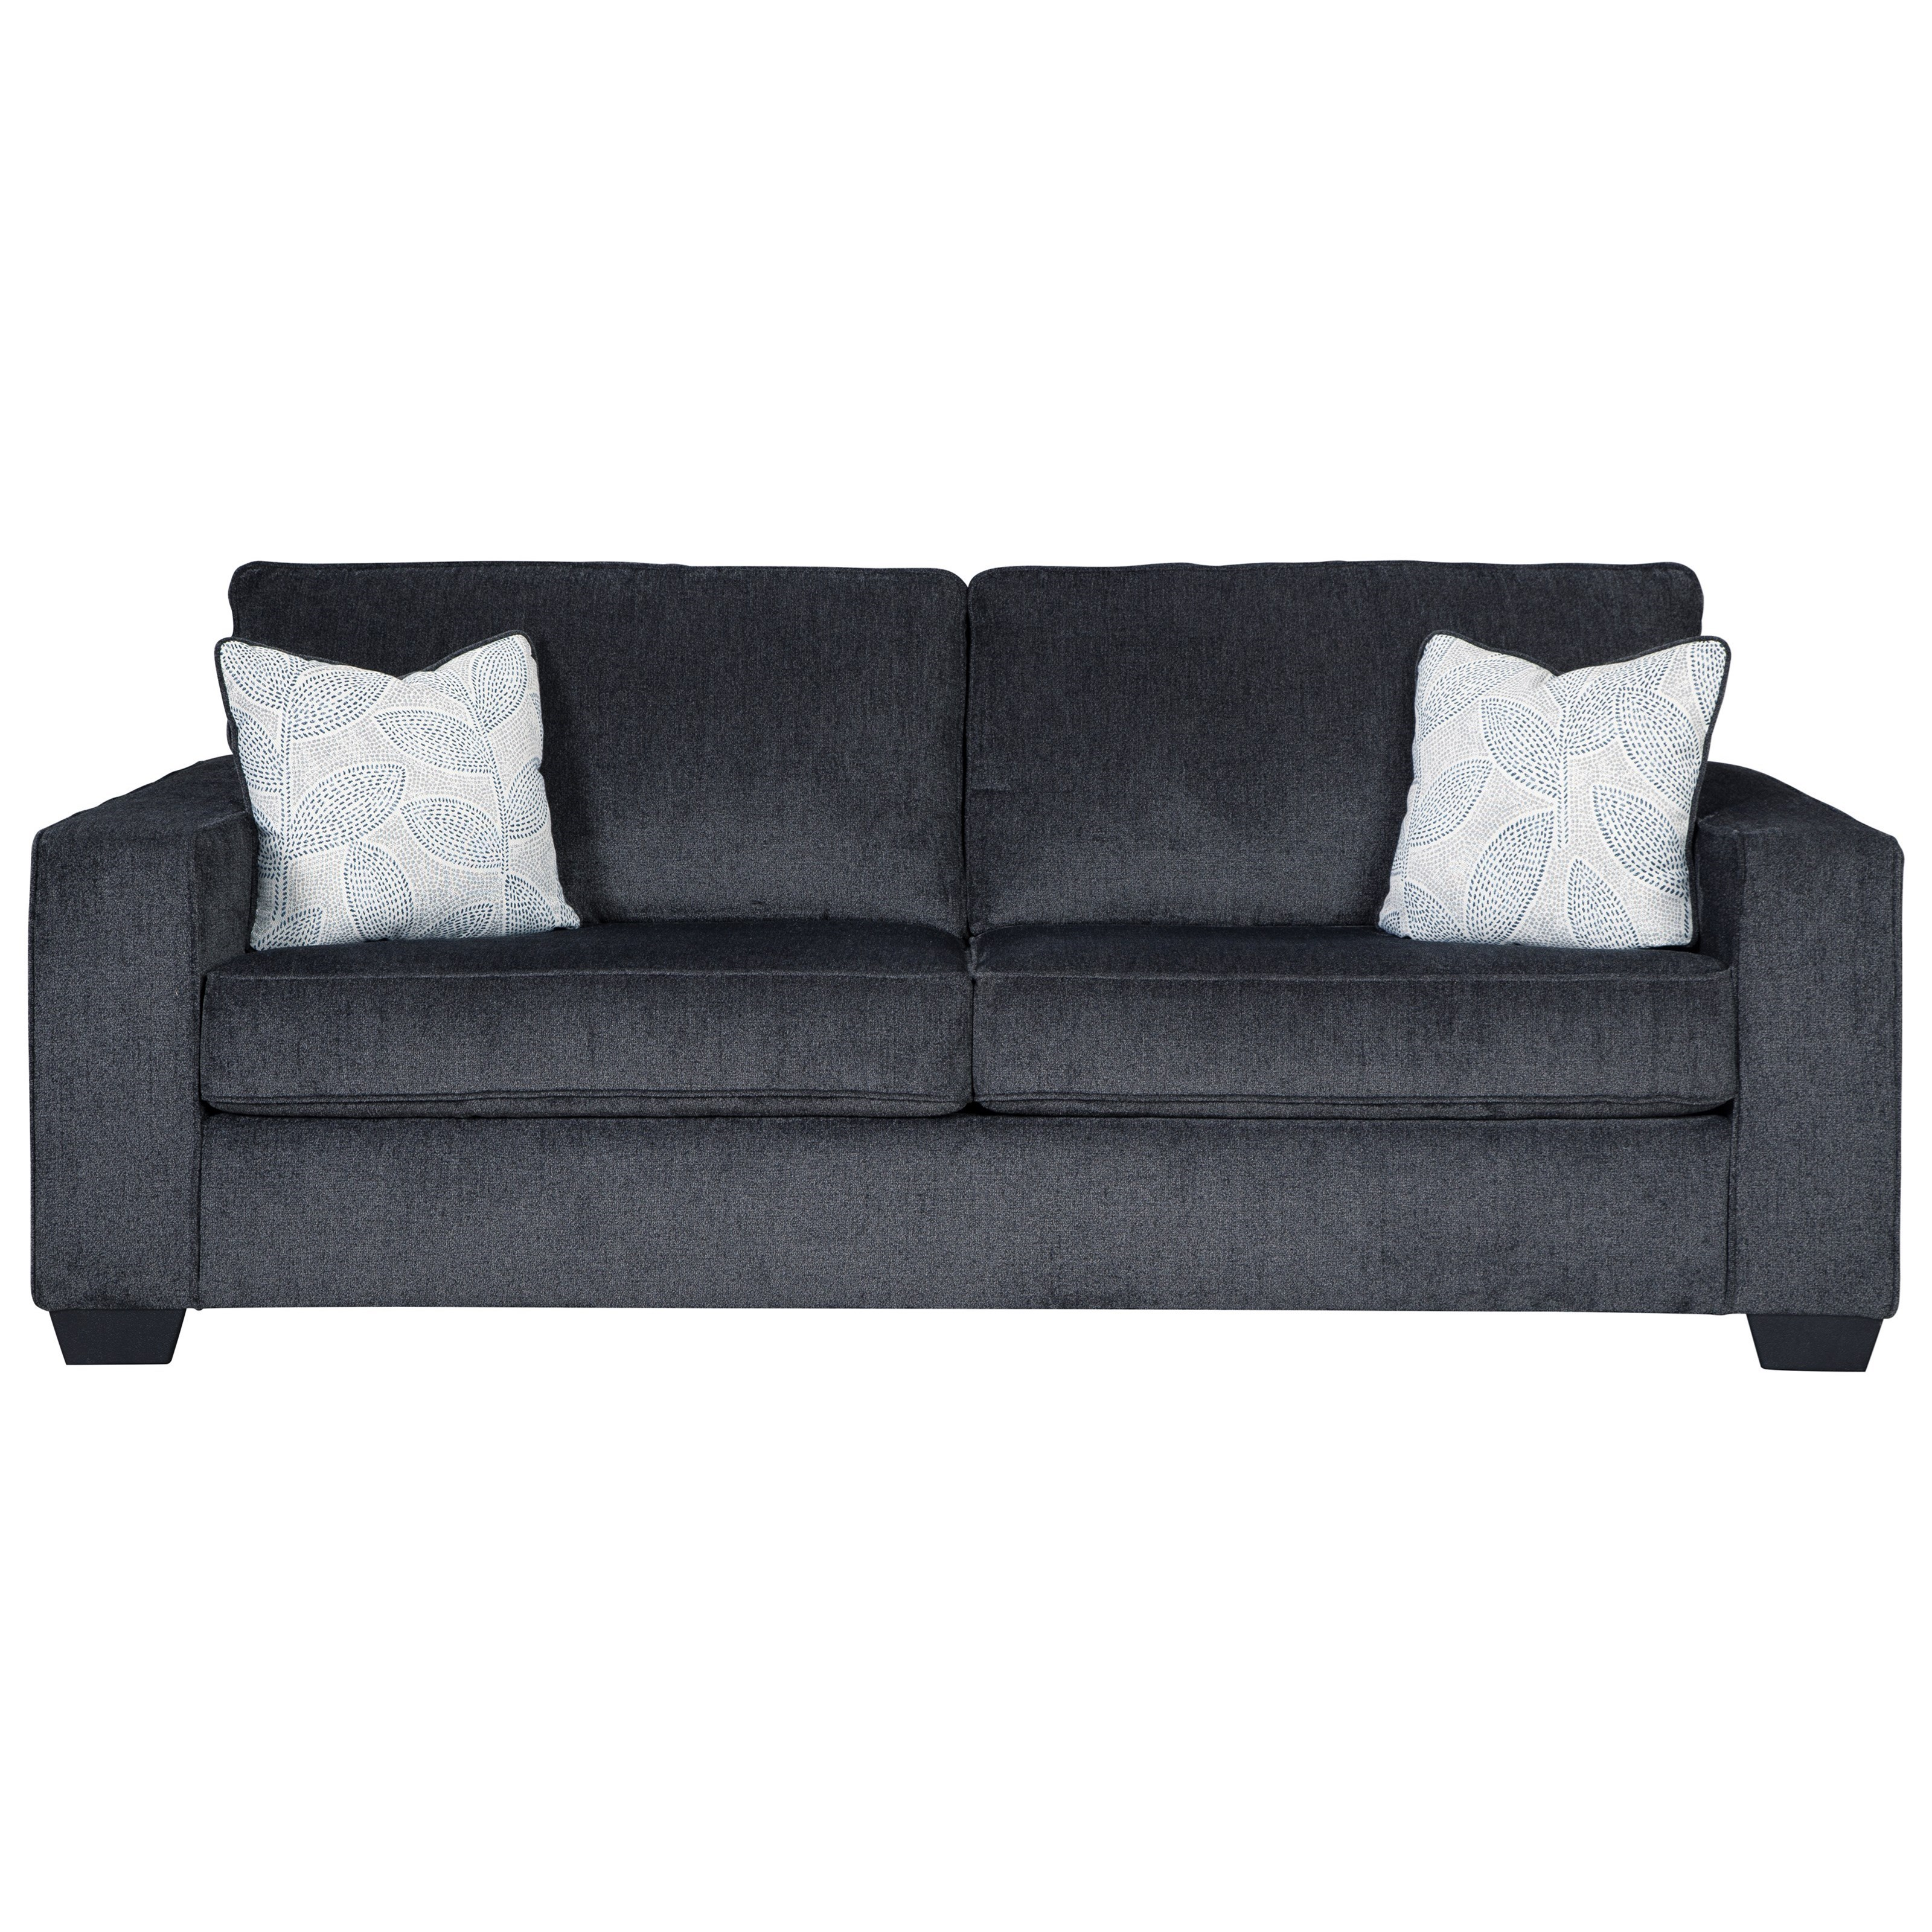 Altari Queen Sofa Sleeper by Ashley Signature Design at Rooms and Rest